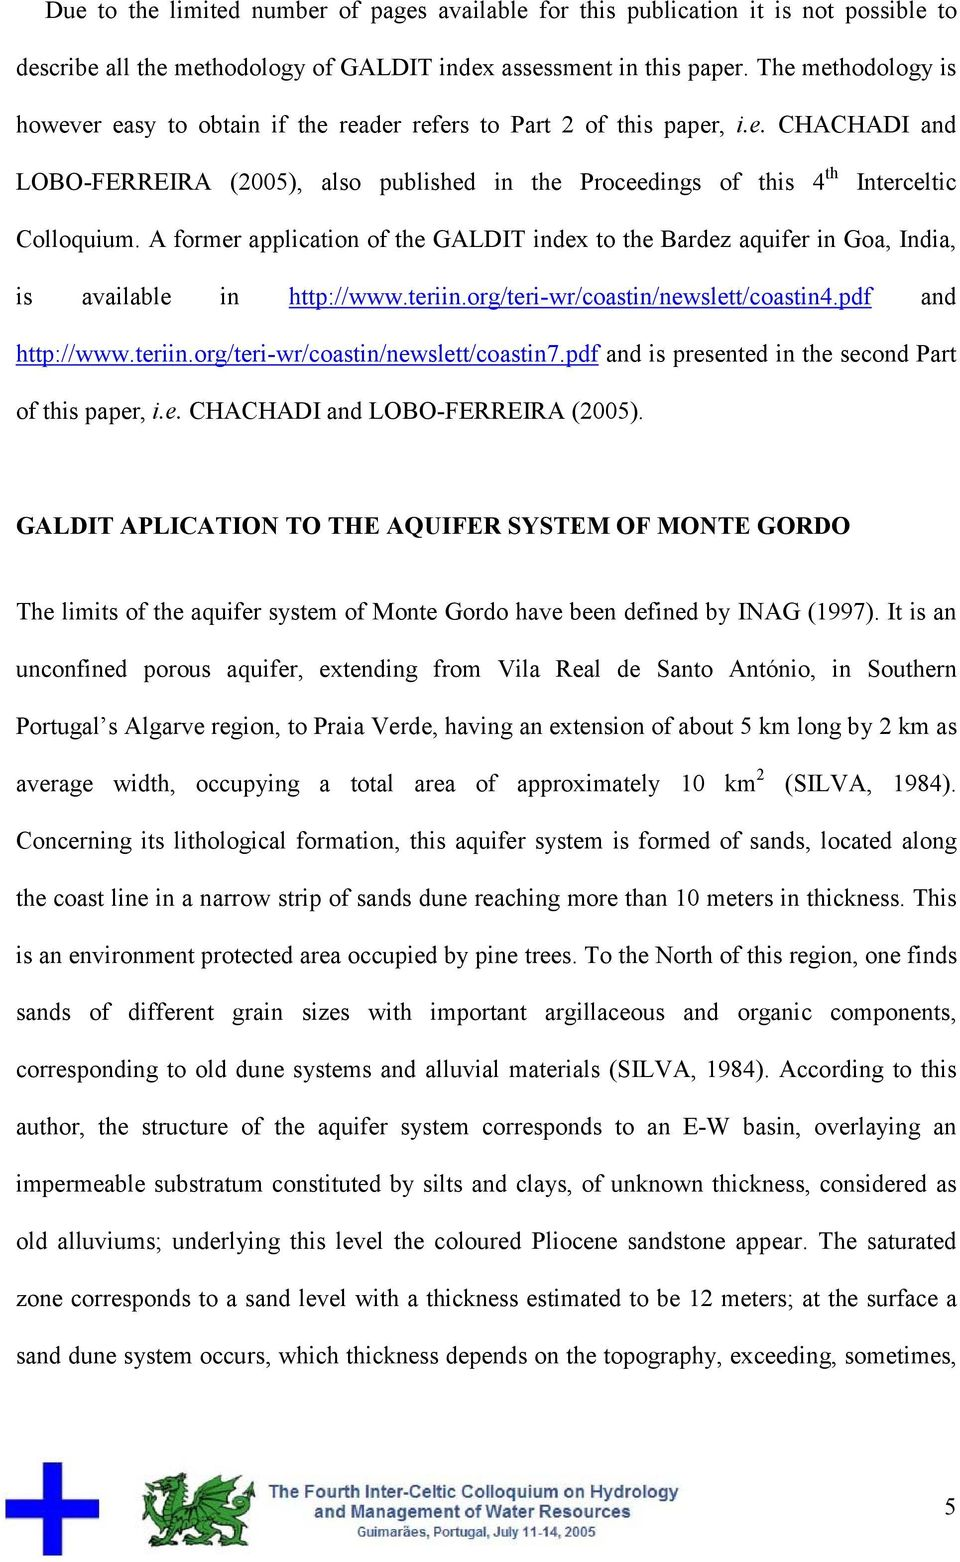 A former application of the GALDIT index to the Bardez aquifer in Goa, India, is available in http://www.teriin.org/teri-wr/coastin/newslett/coastin4.pdf and http://www.teriin.org/teri-wr/coastin/newslett/coastin7.